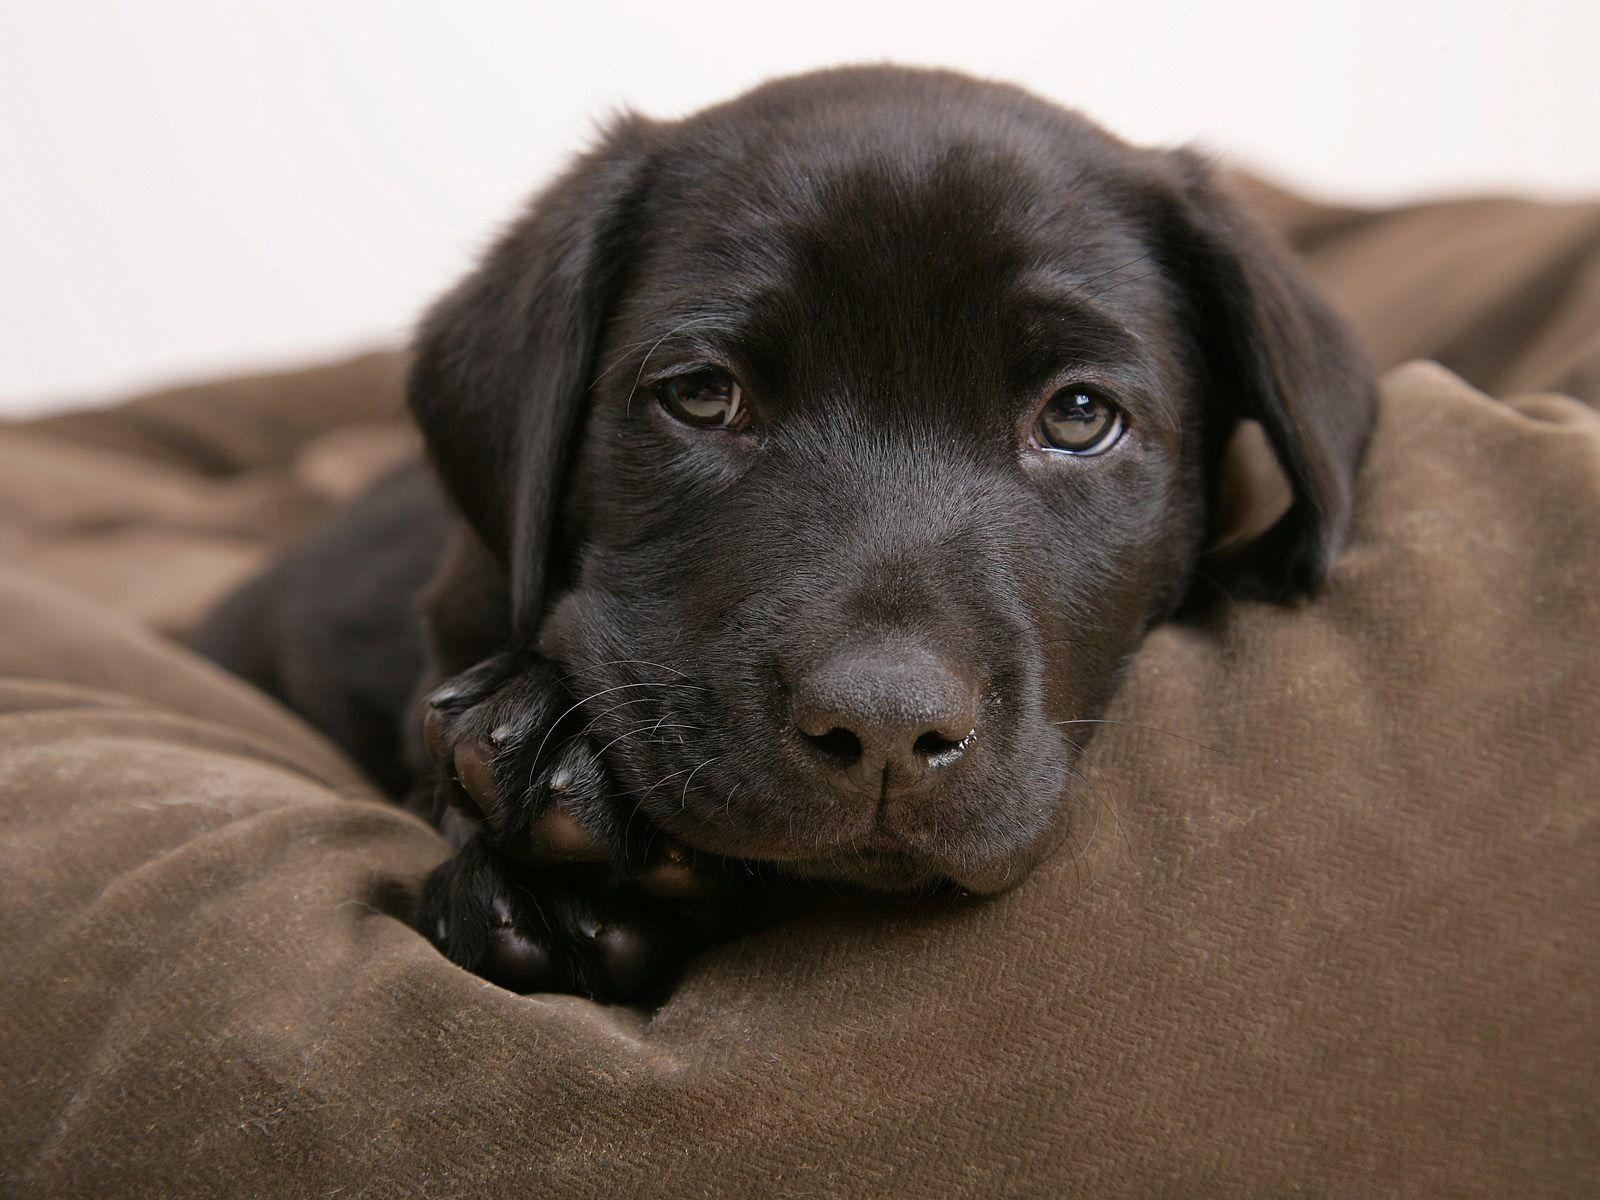 Little labrador - Puppies Wallpaper (14749010) - Fanpop